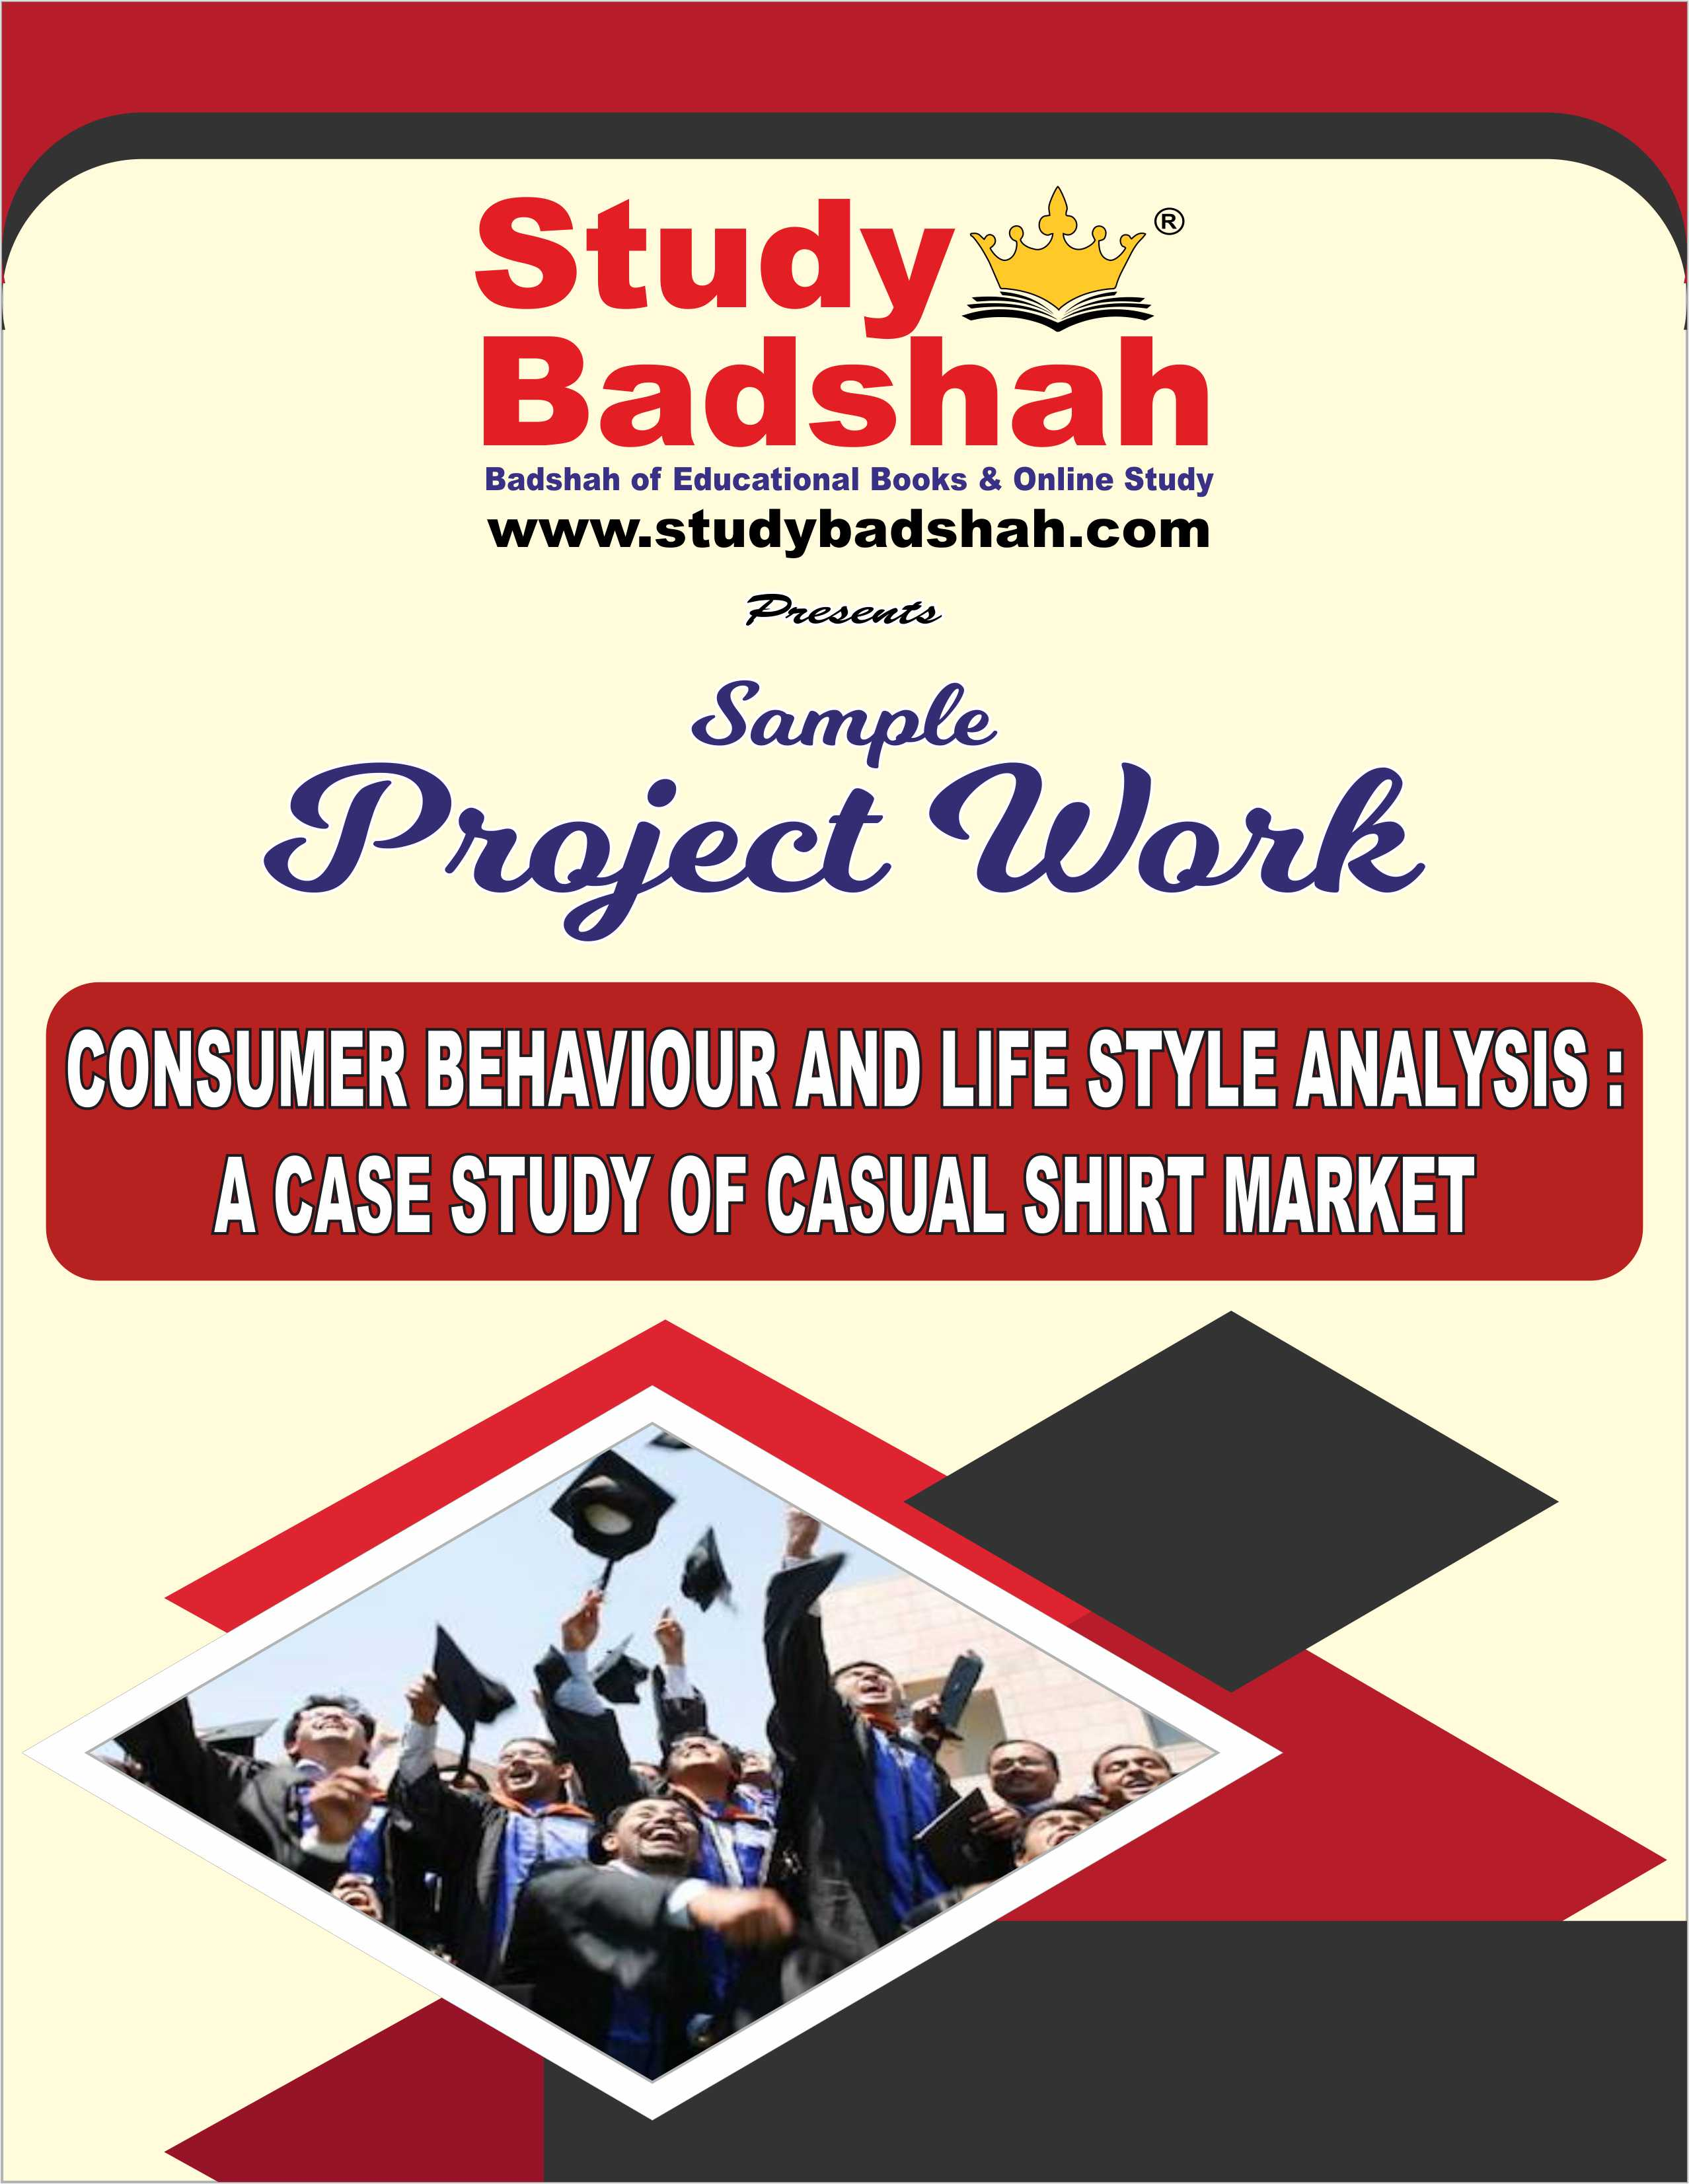 Consumer Behaviour and Life Style Analysis A Case Study of Casual Shirt Market